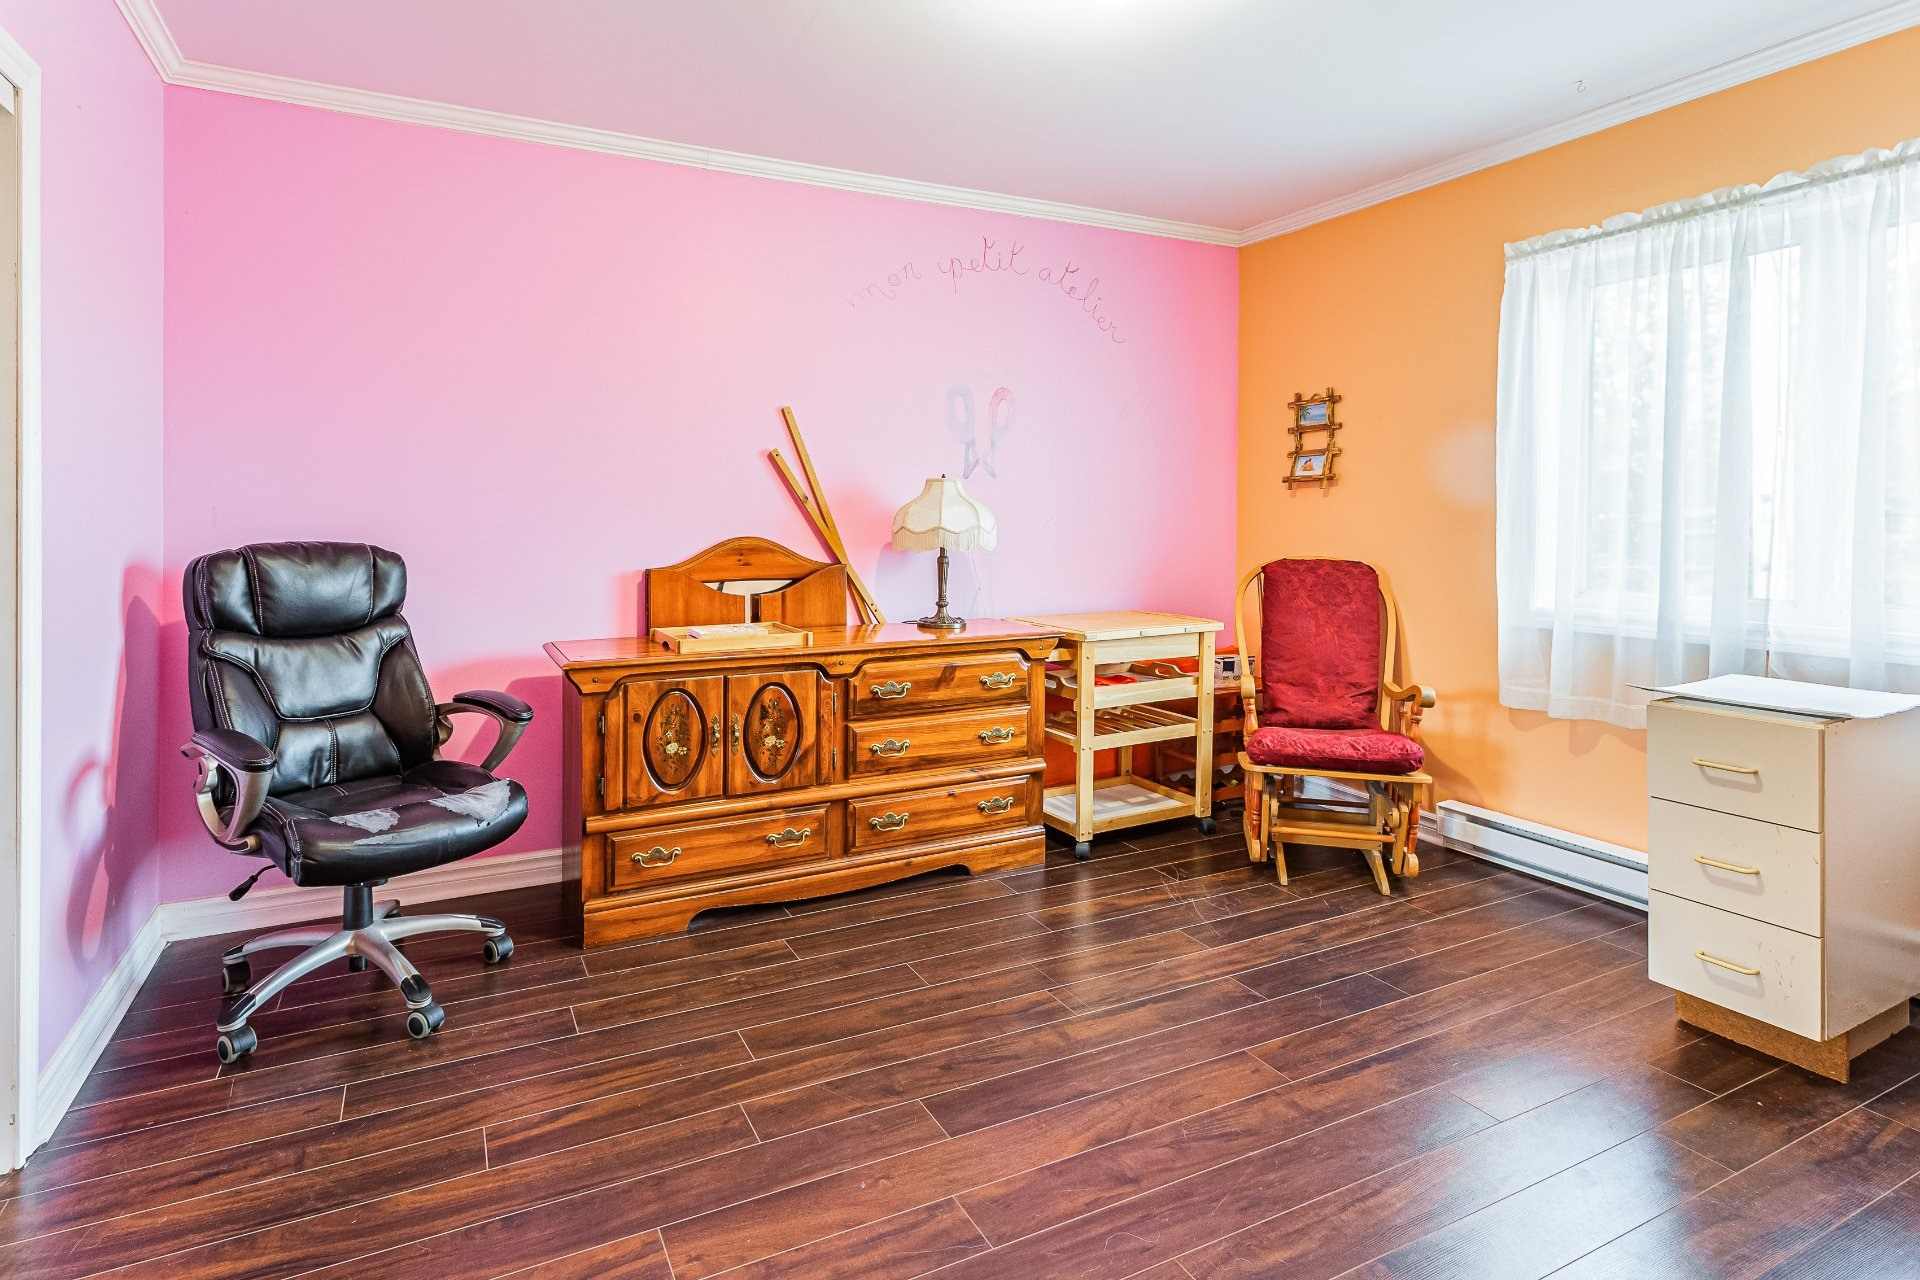 image 13 - Duplex For sale Repentigny Repentigny  - 7 rooms